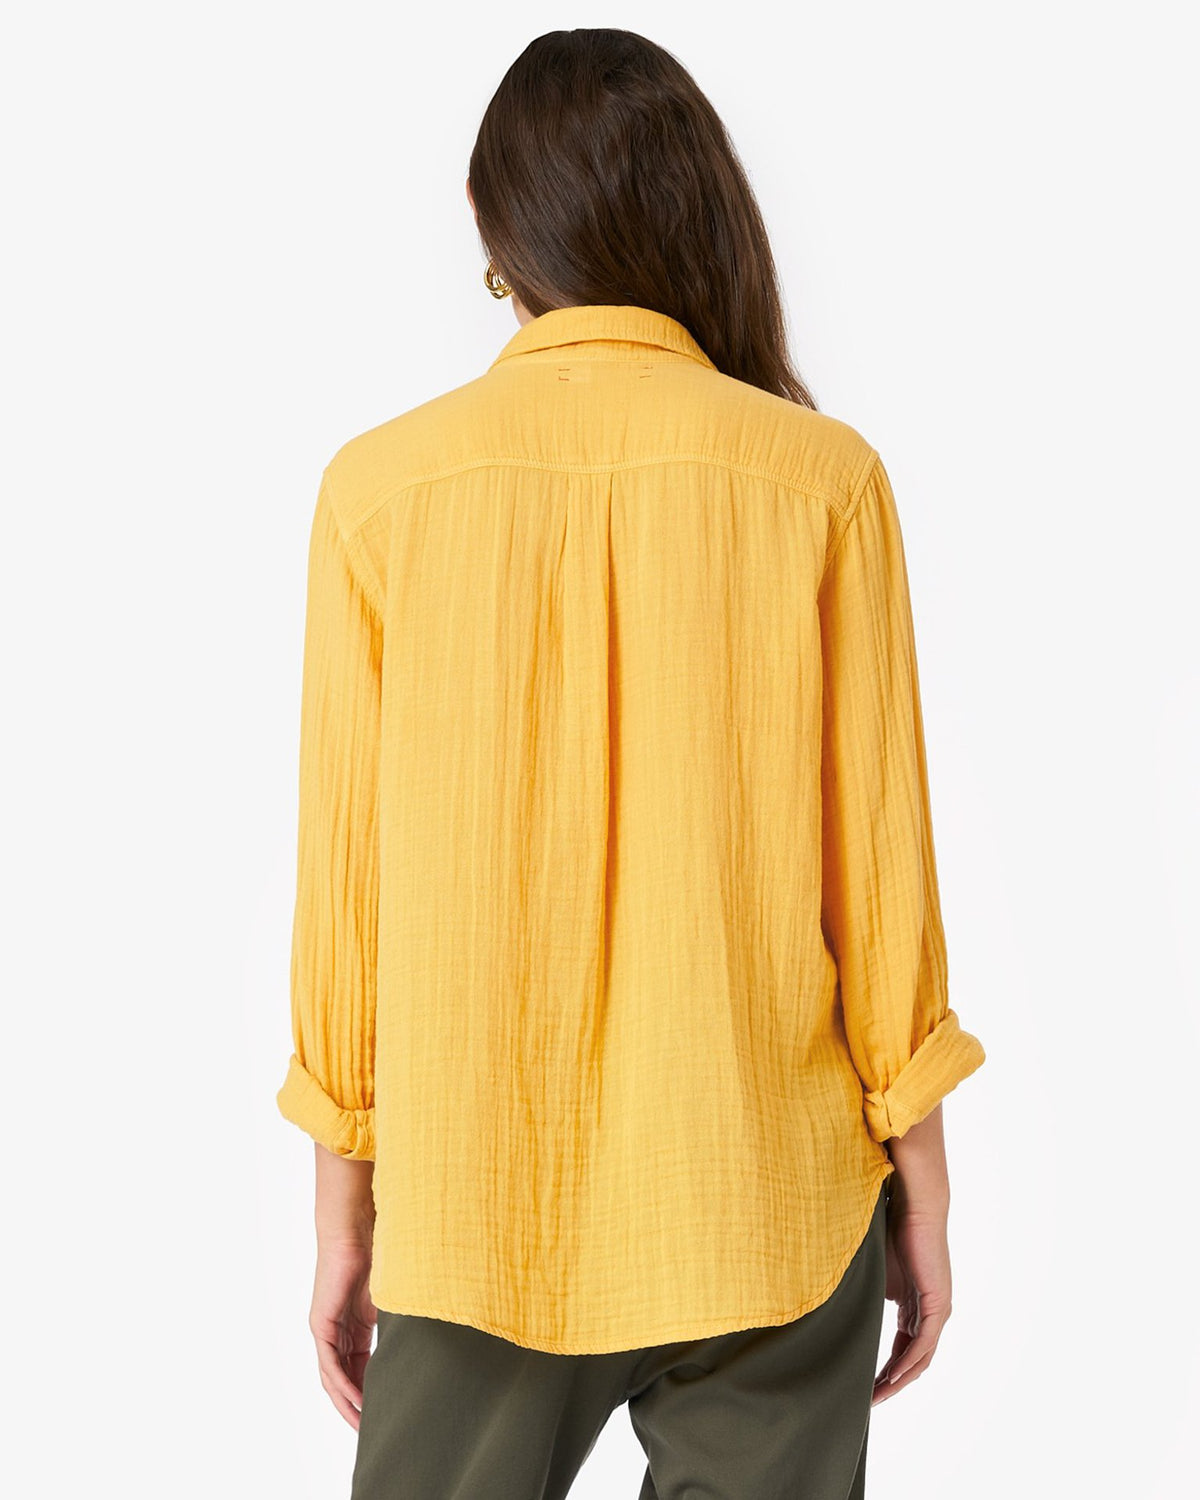 XiRENA Clothing Scout Shirt in Pollen